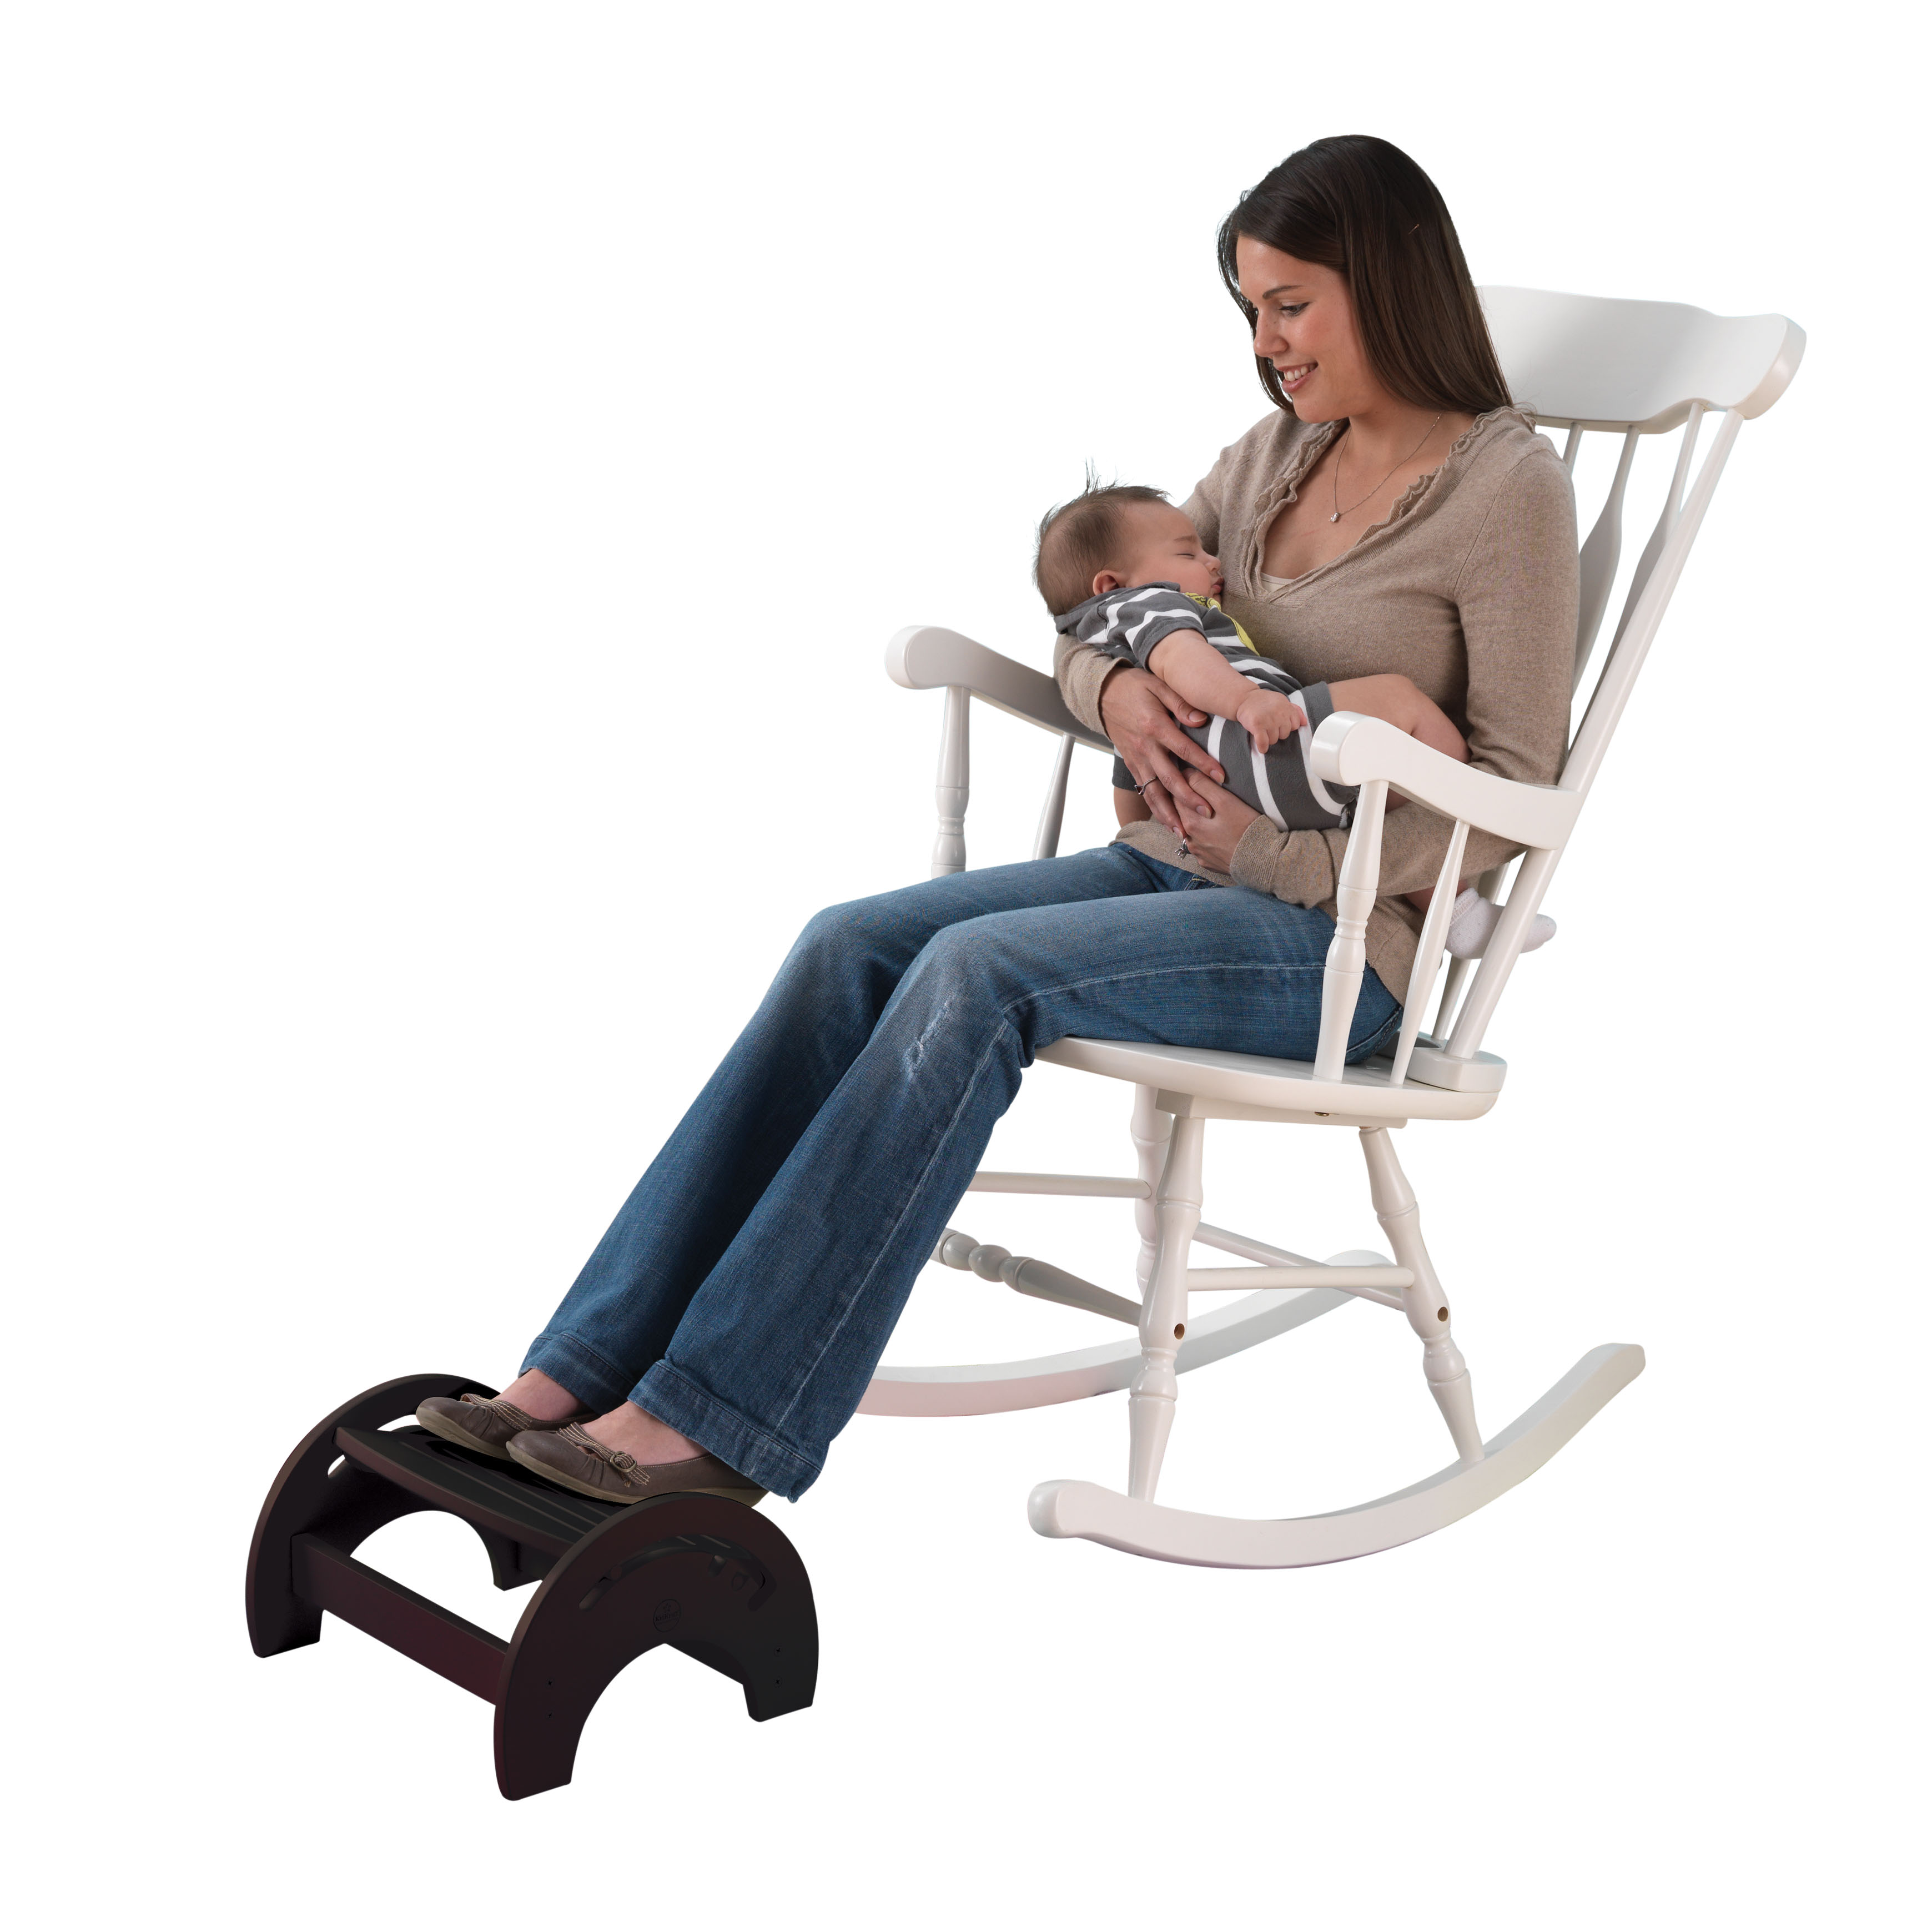 KidKraft Adjustable Stool for Nursing - Espresso